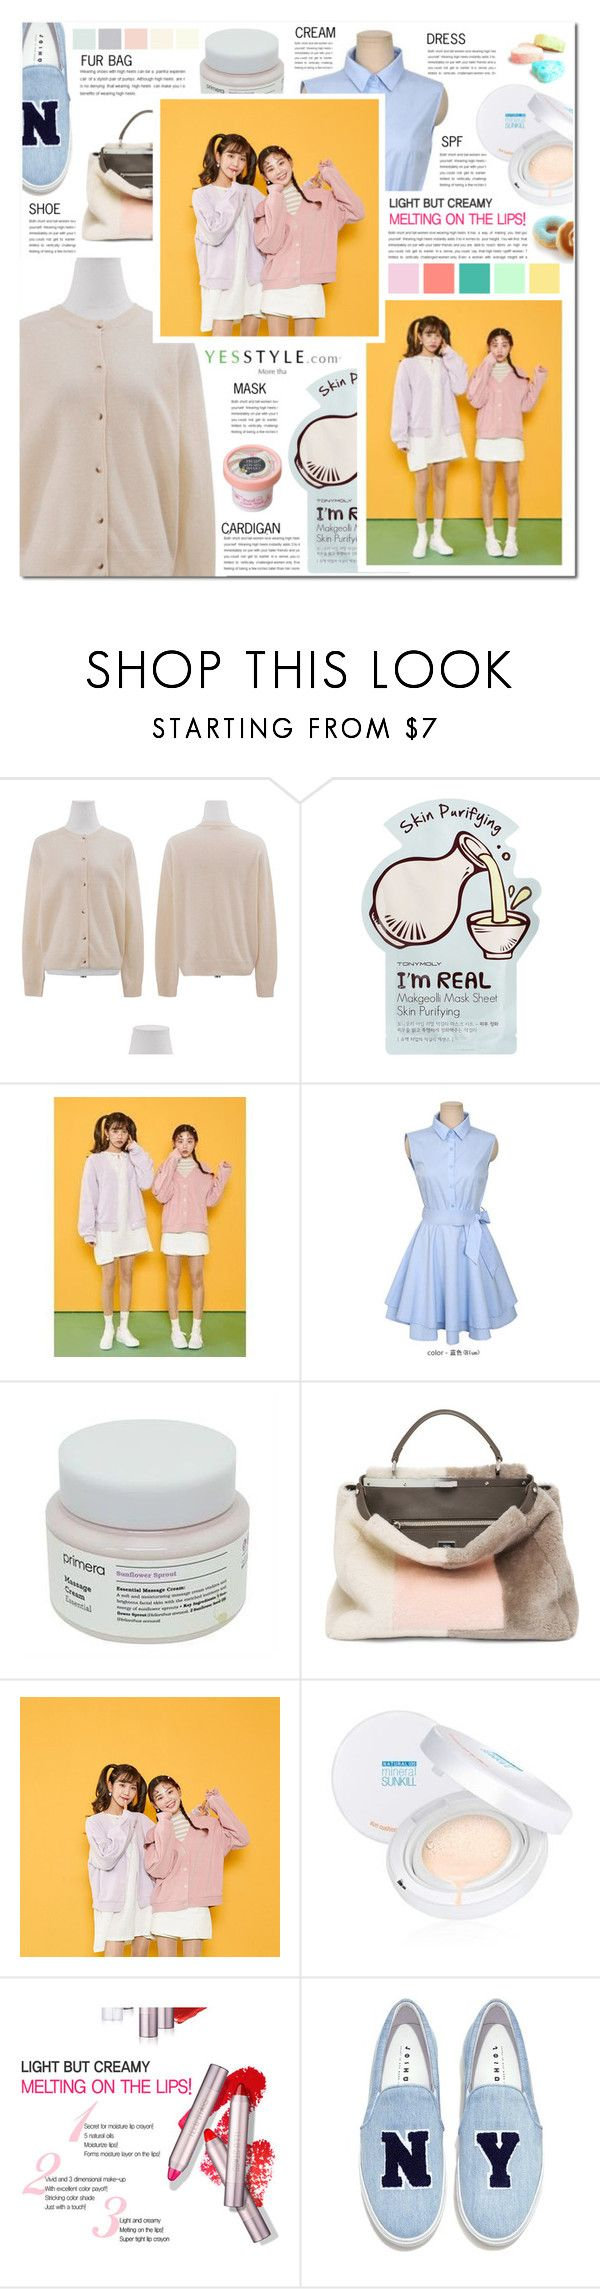 """""""Show us your ootd with Cardigans - US$40 store coupons for FIRST TWO winners!"""" by pankh ❤ liked on Polyvore featuring Tony Moly, Jolly Club, Fendi, Joshua's, Winter, ootd, cardigans and yesstyle"""